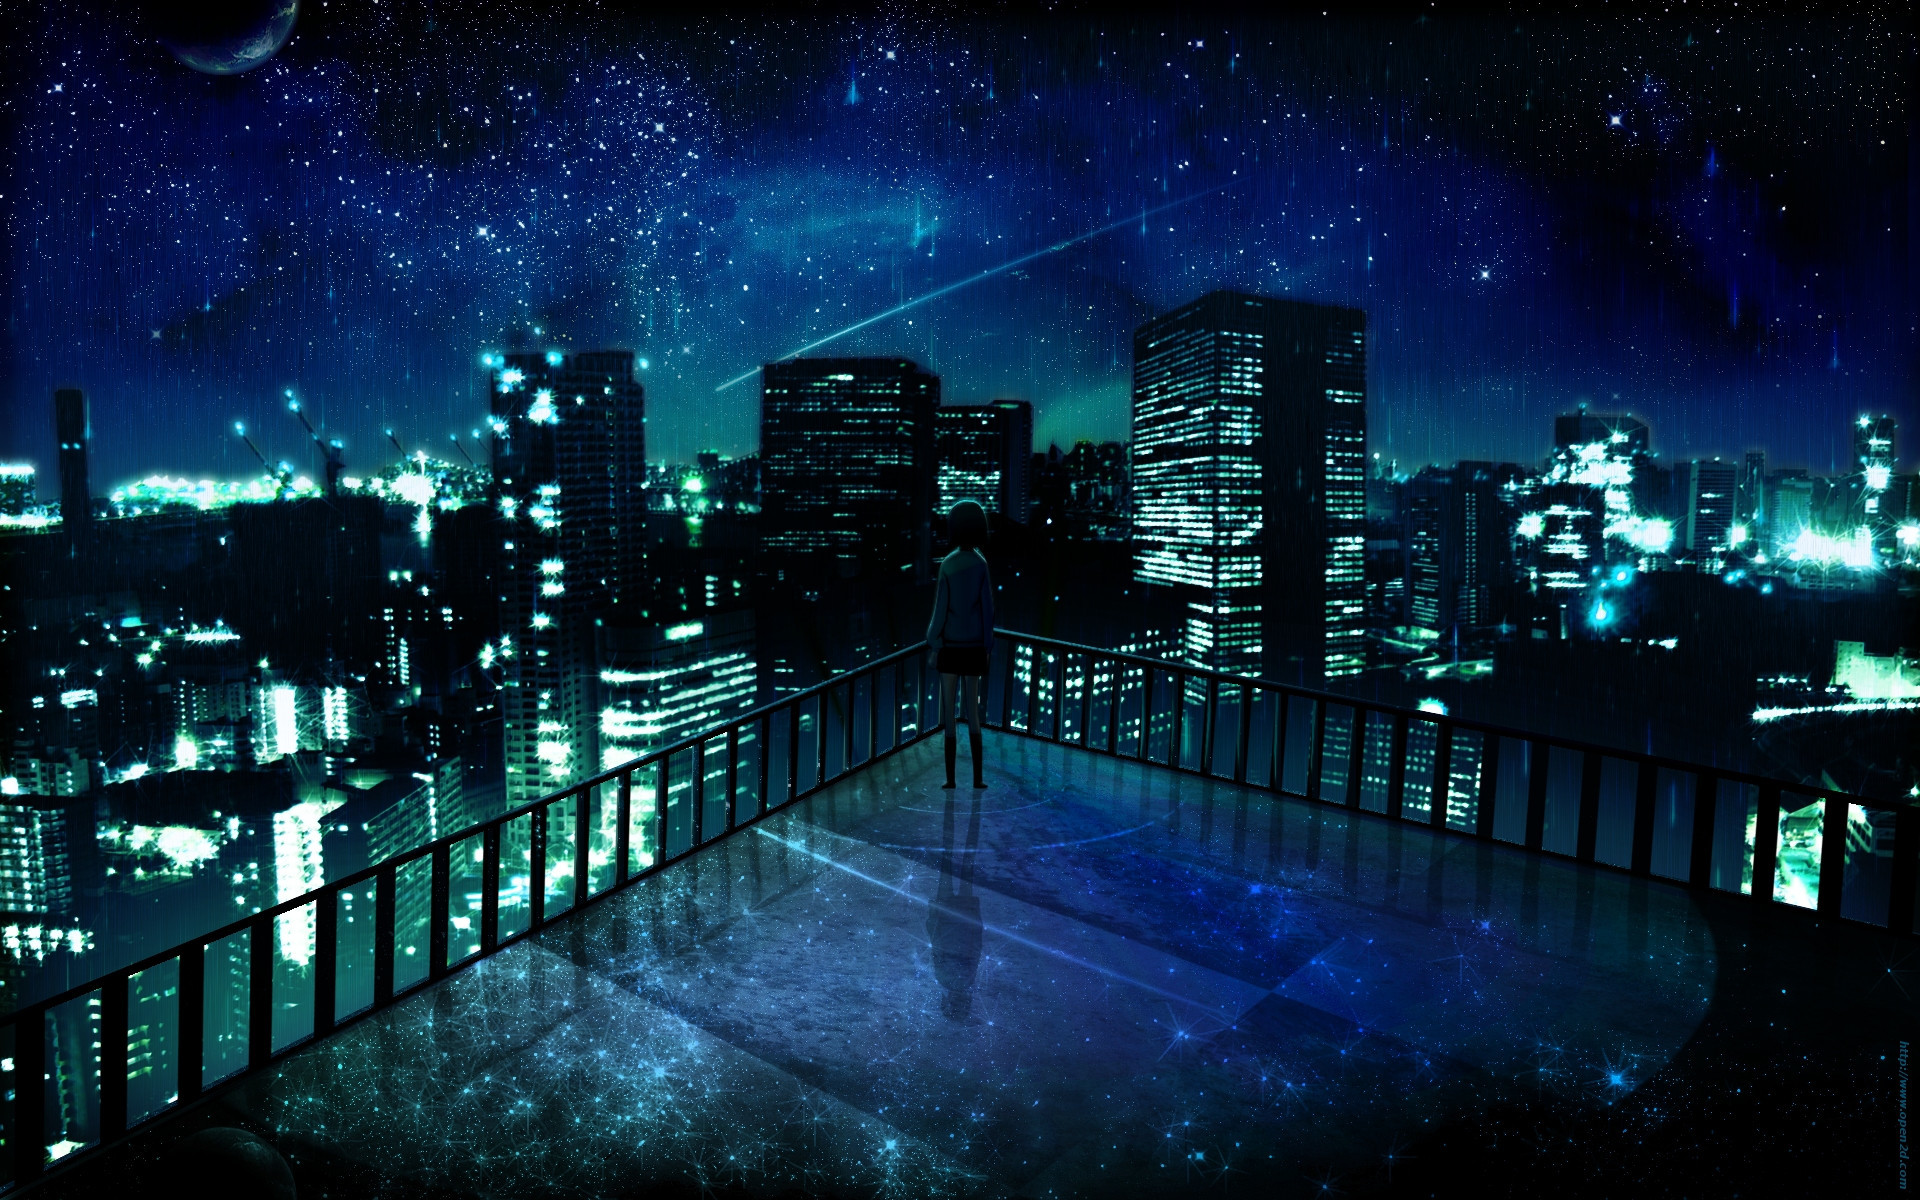 outer space cityscapes night stars alone balcony buildings city lights  artwork manga night landscape Wallpaper